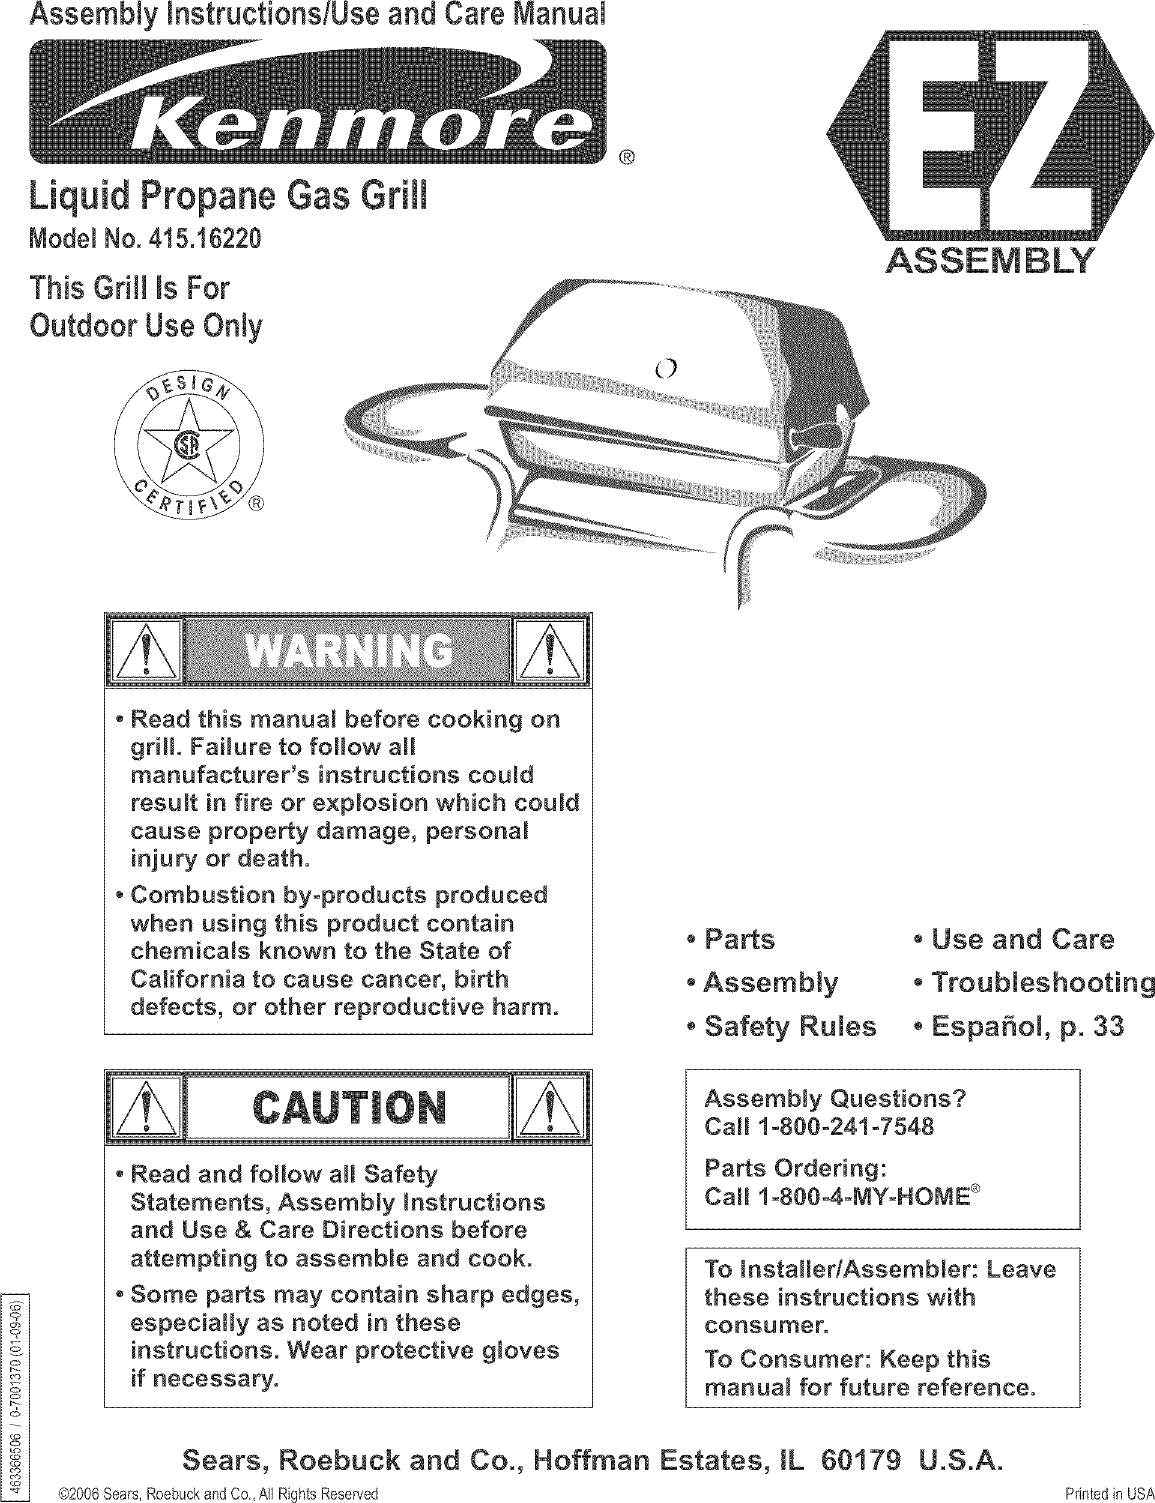 kenmore 41516220 user manual gas grill manuals and guides l0602223 rh usermanual wiki Kenmore Progressive Vacuum Owner's Manual Kenmore Washing Machine Manuals